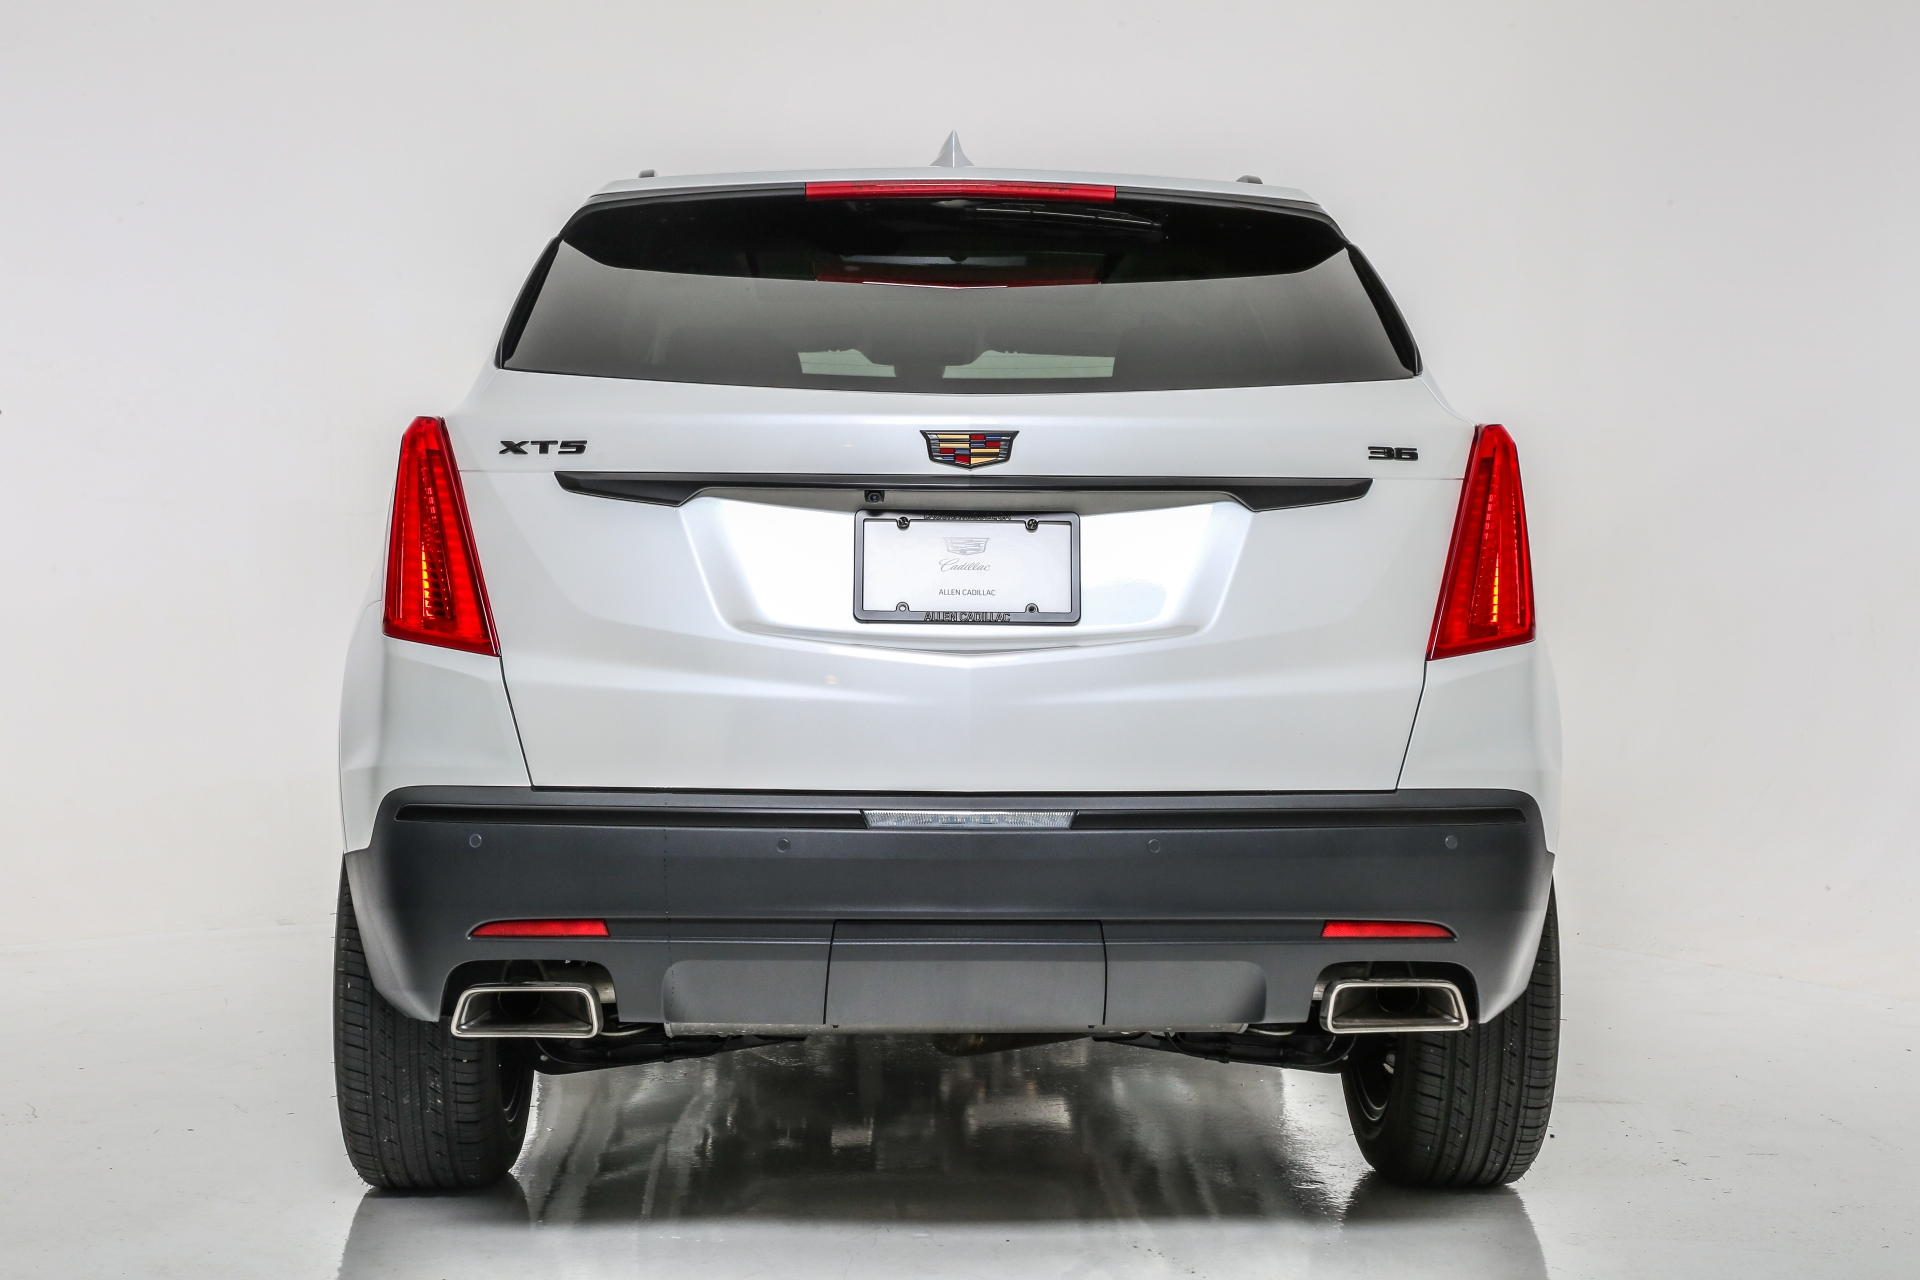 Cadillac Blackout Packages | XT5, Escalade, ESV, CTS, ATS